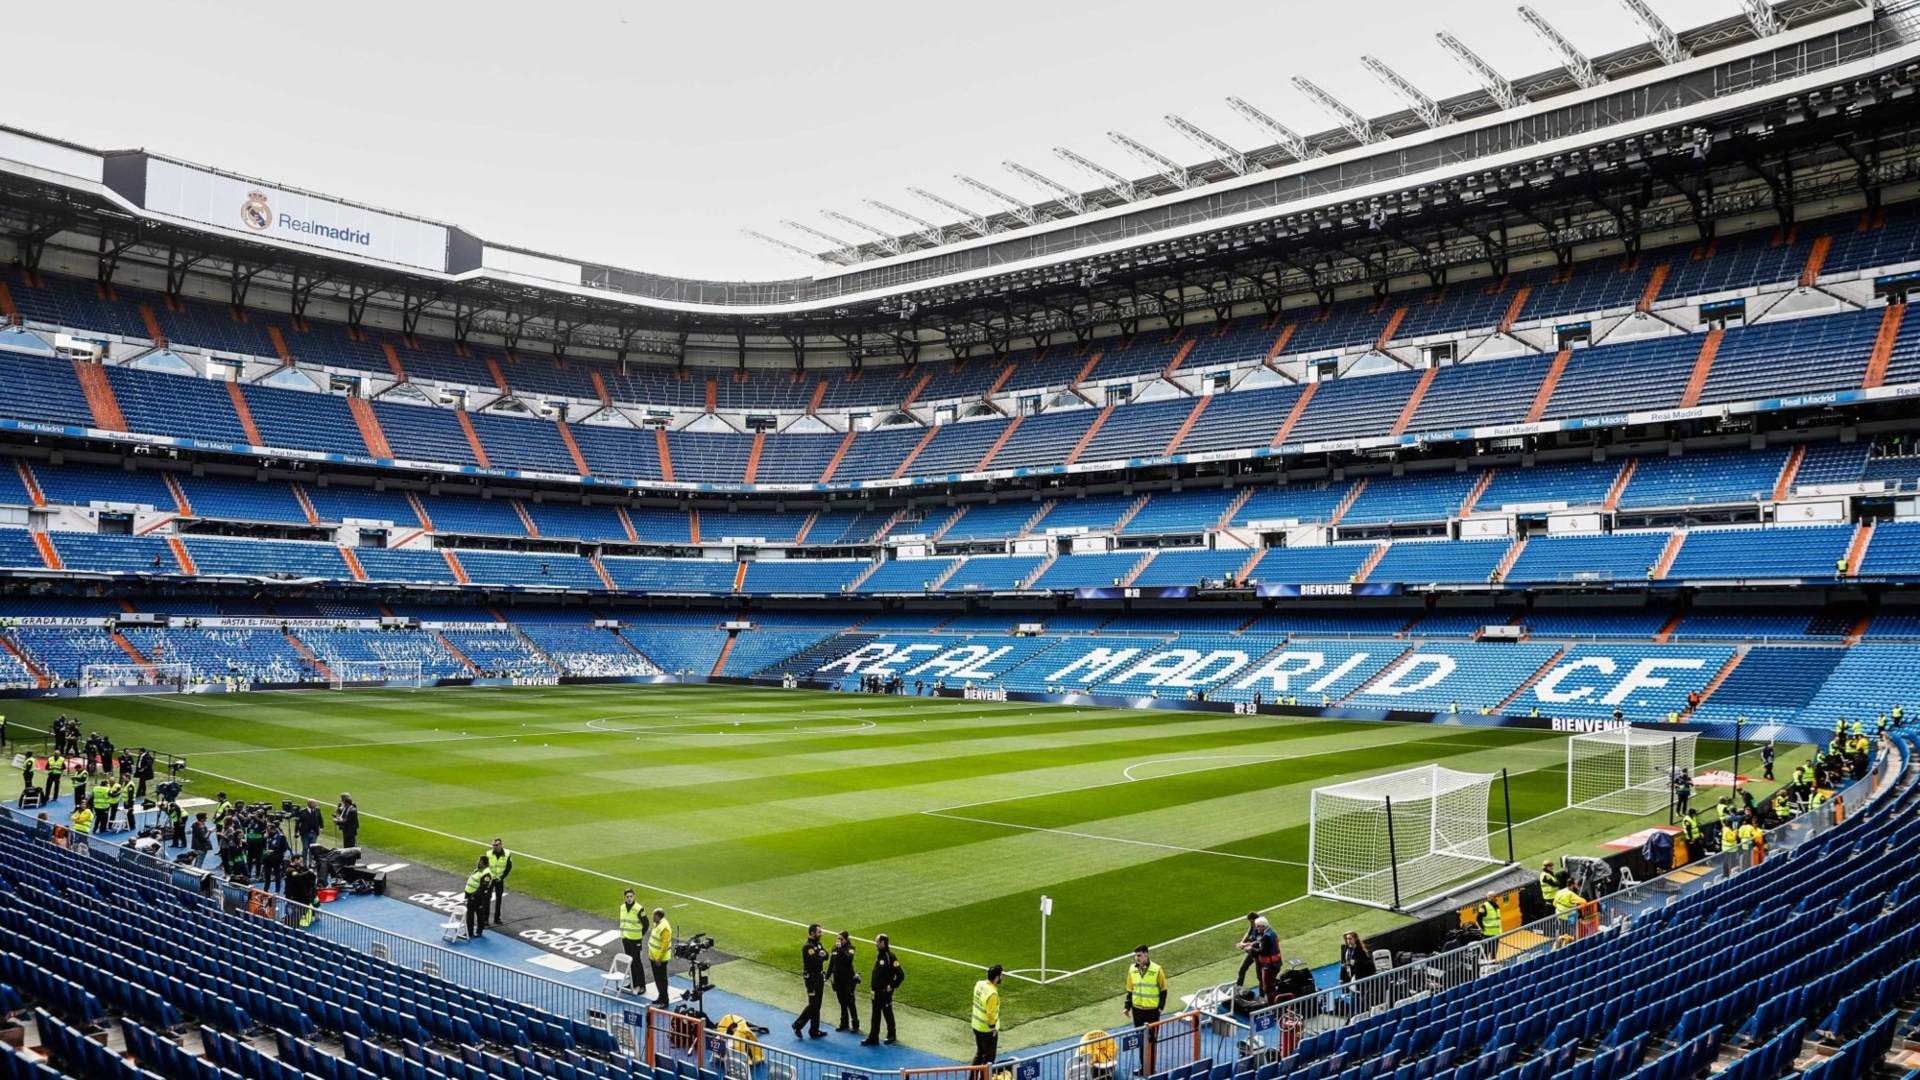 Real Madrid ends financial year with €313k profit, despite suffering with COVID-19…